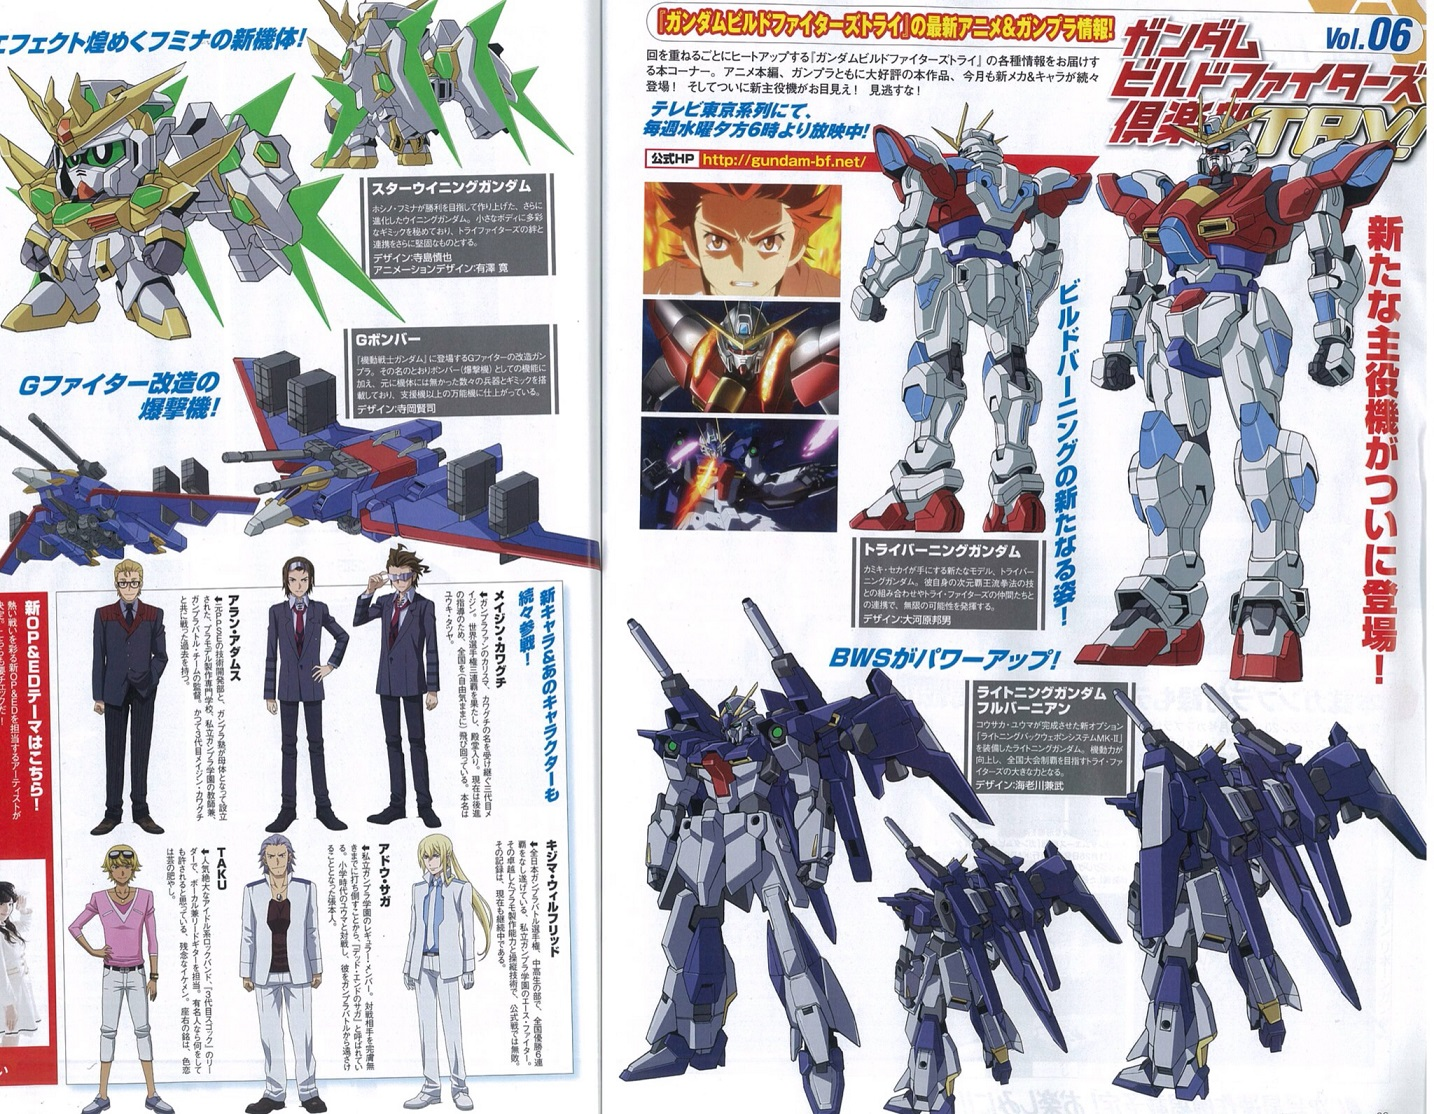 Gundam build fighters try characters images for Domon kasshu build fighters try